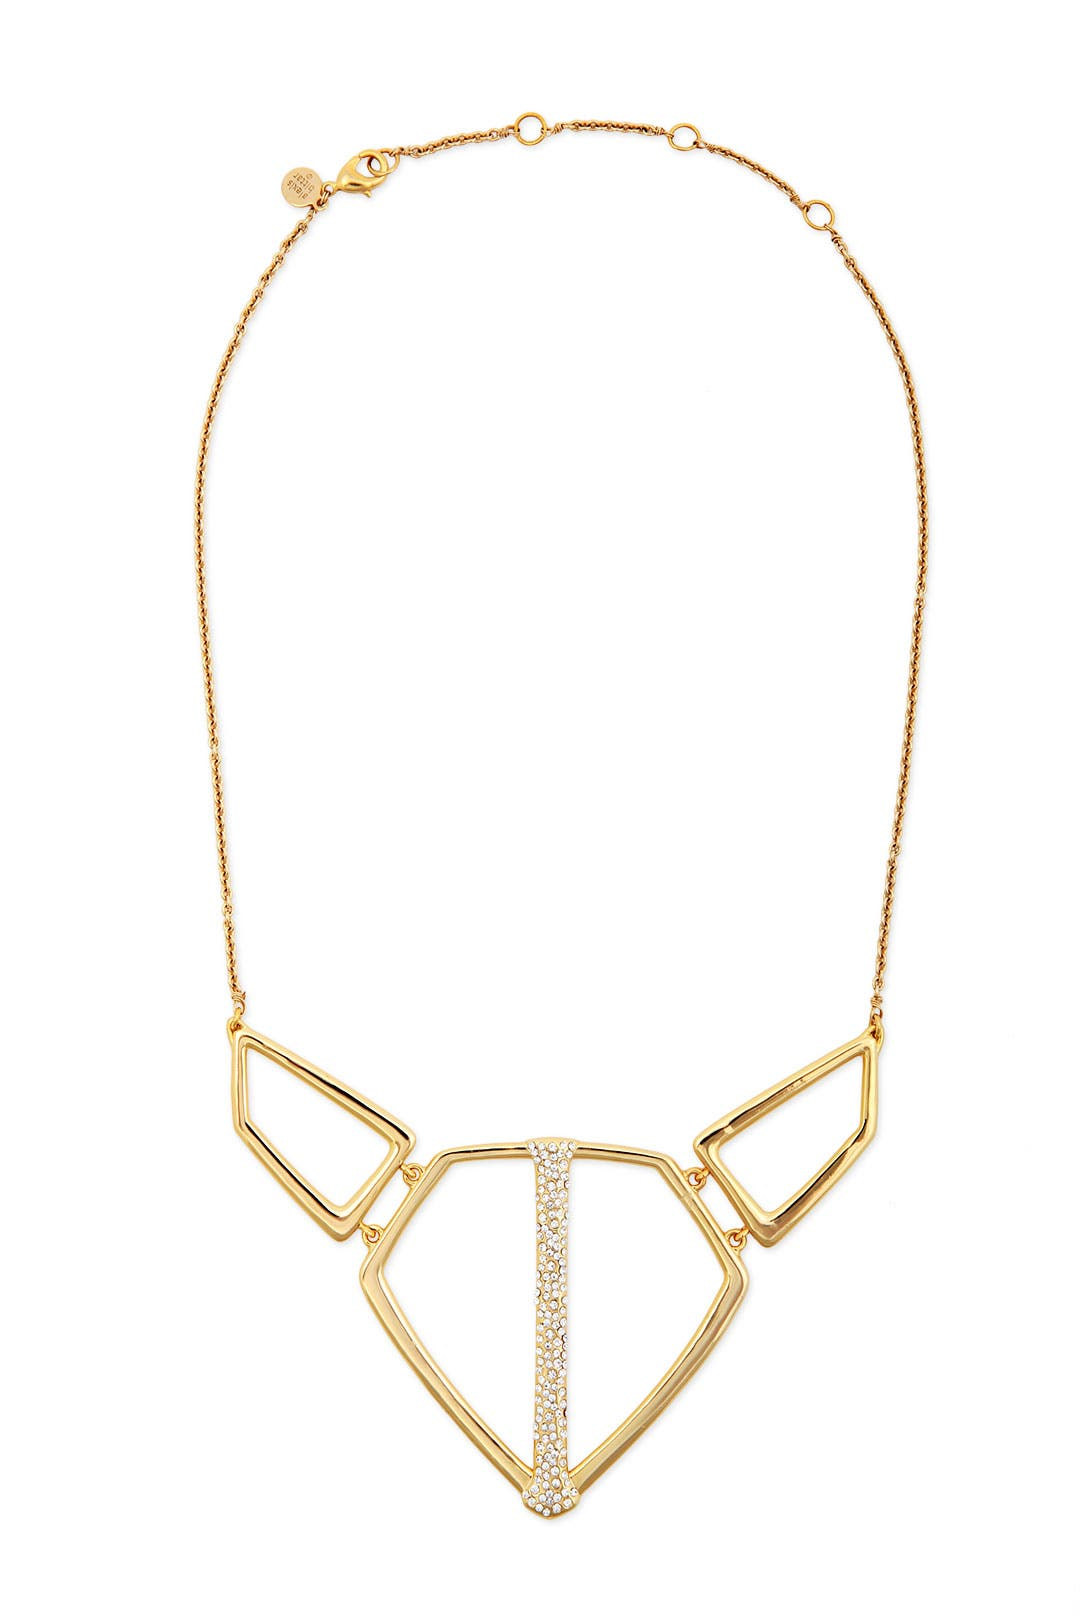 Intergalactic Necklace by Alexis Bittar